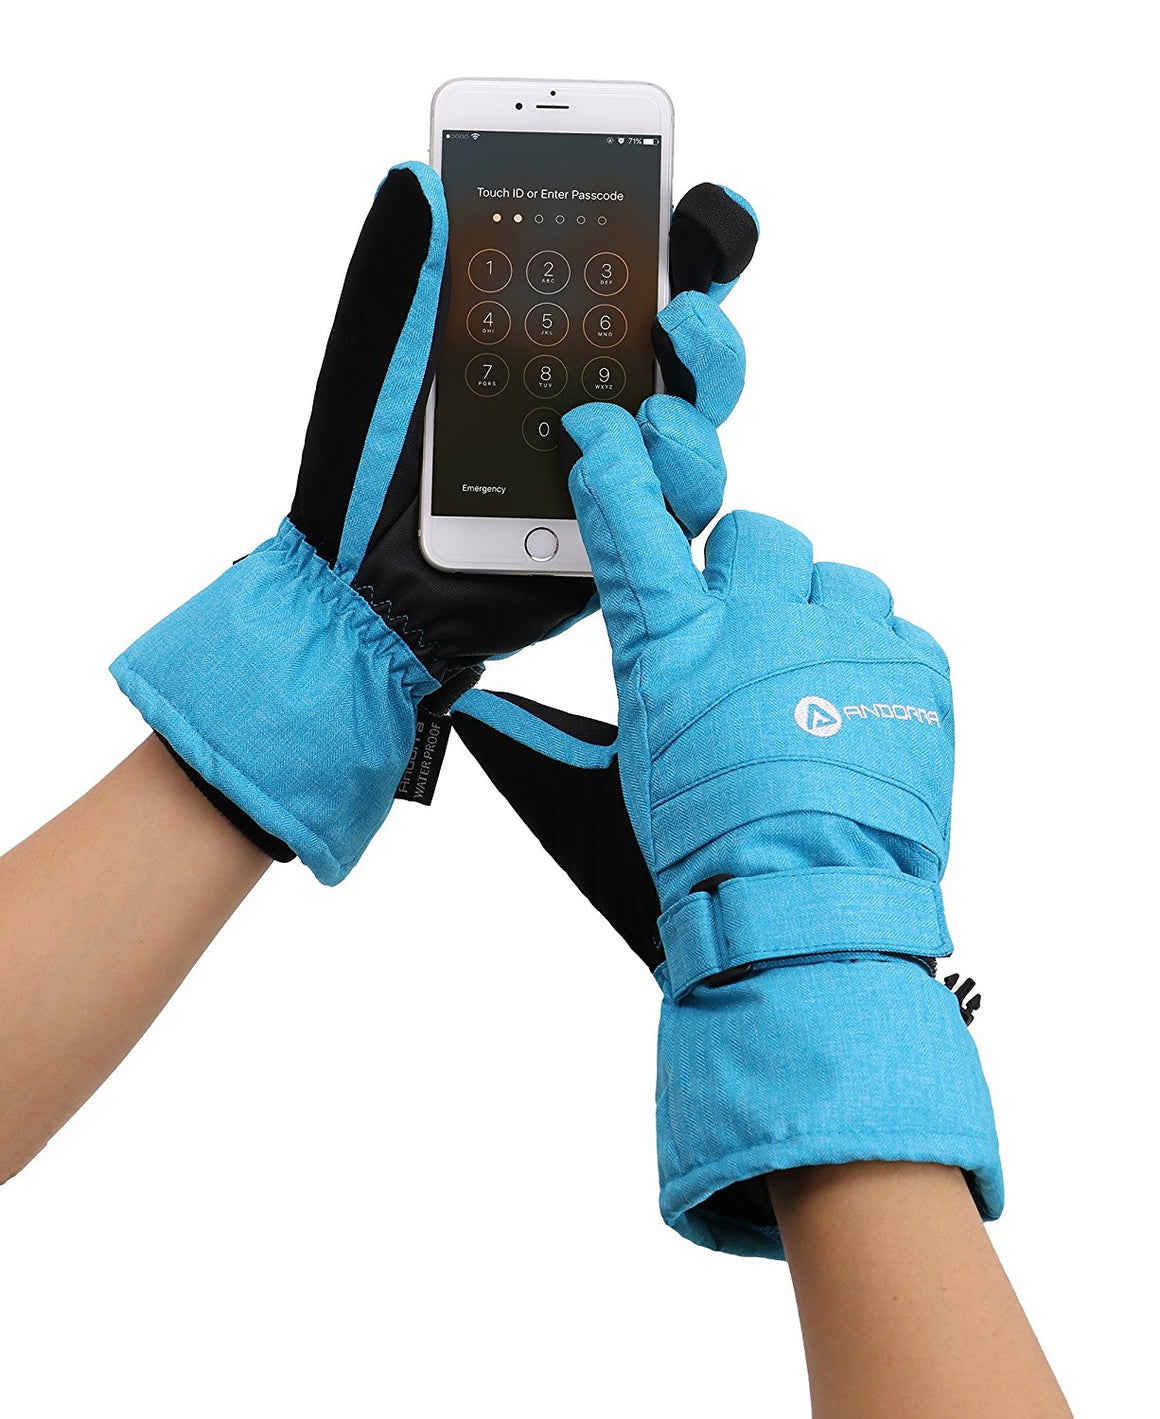 Andorra Women's Classic Zippered Pocket Touchscreen Ski Glove - Blue